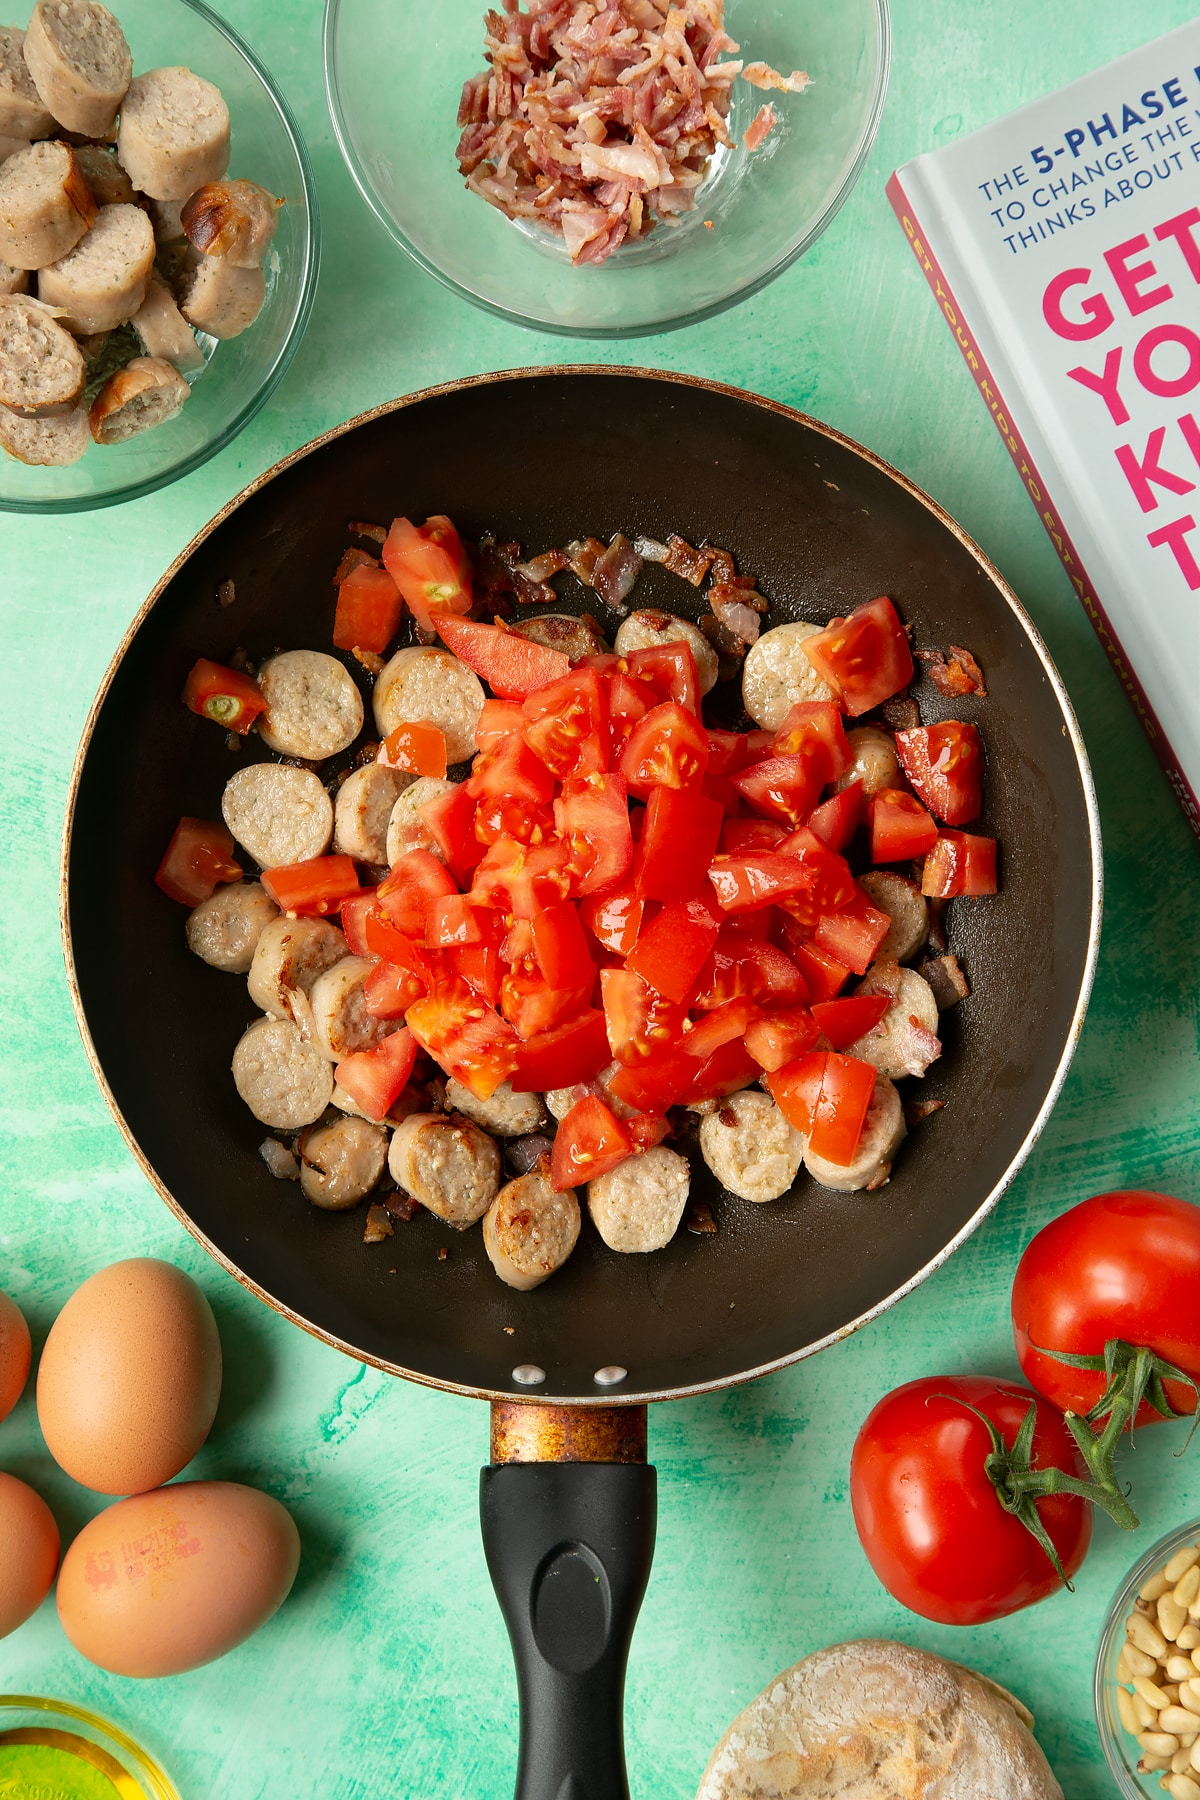 A frying pan containing fried sausage and bacon, topped with chopped tomatoes. The pan is surrounded by ingredients to make breakfast rolls.